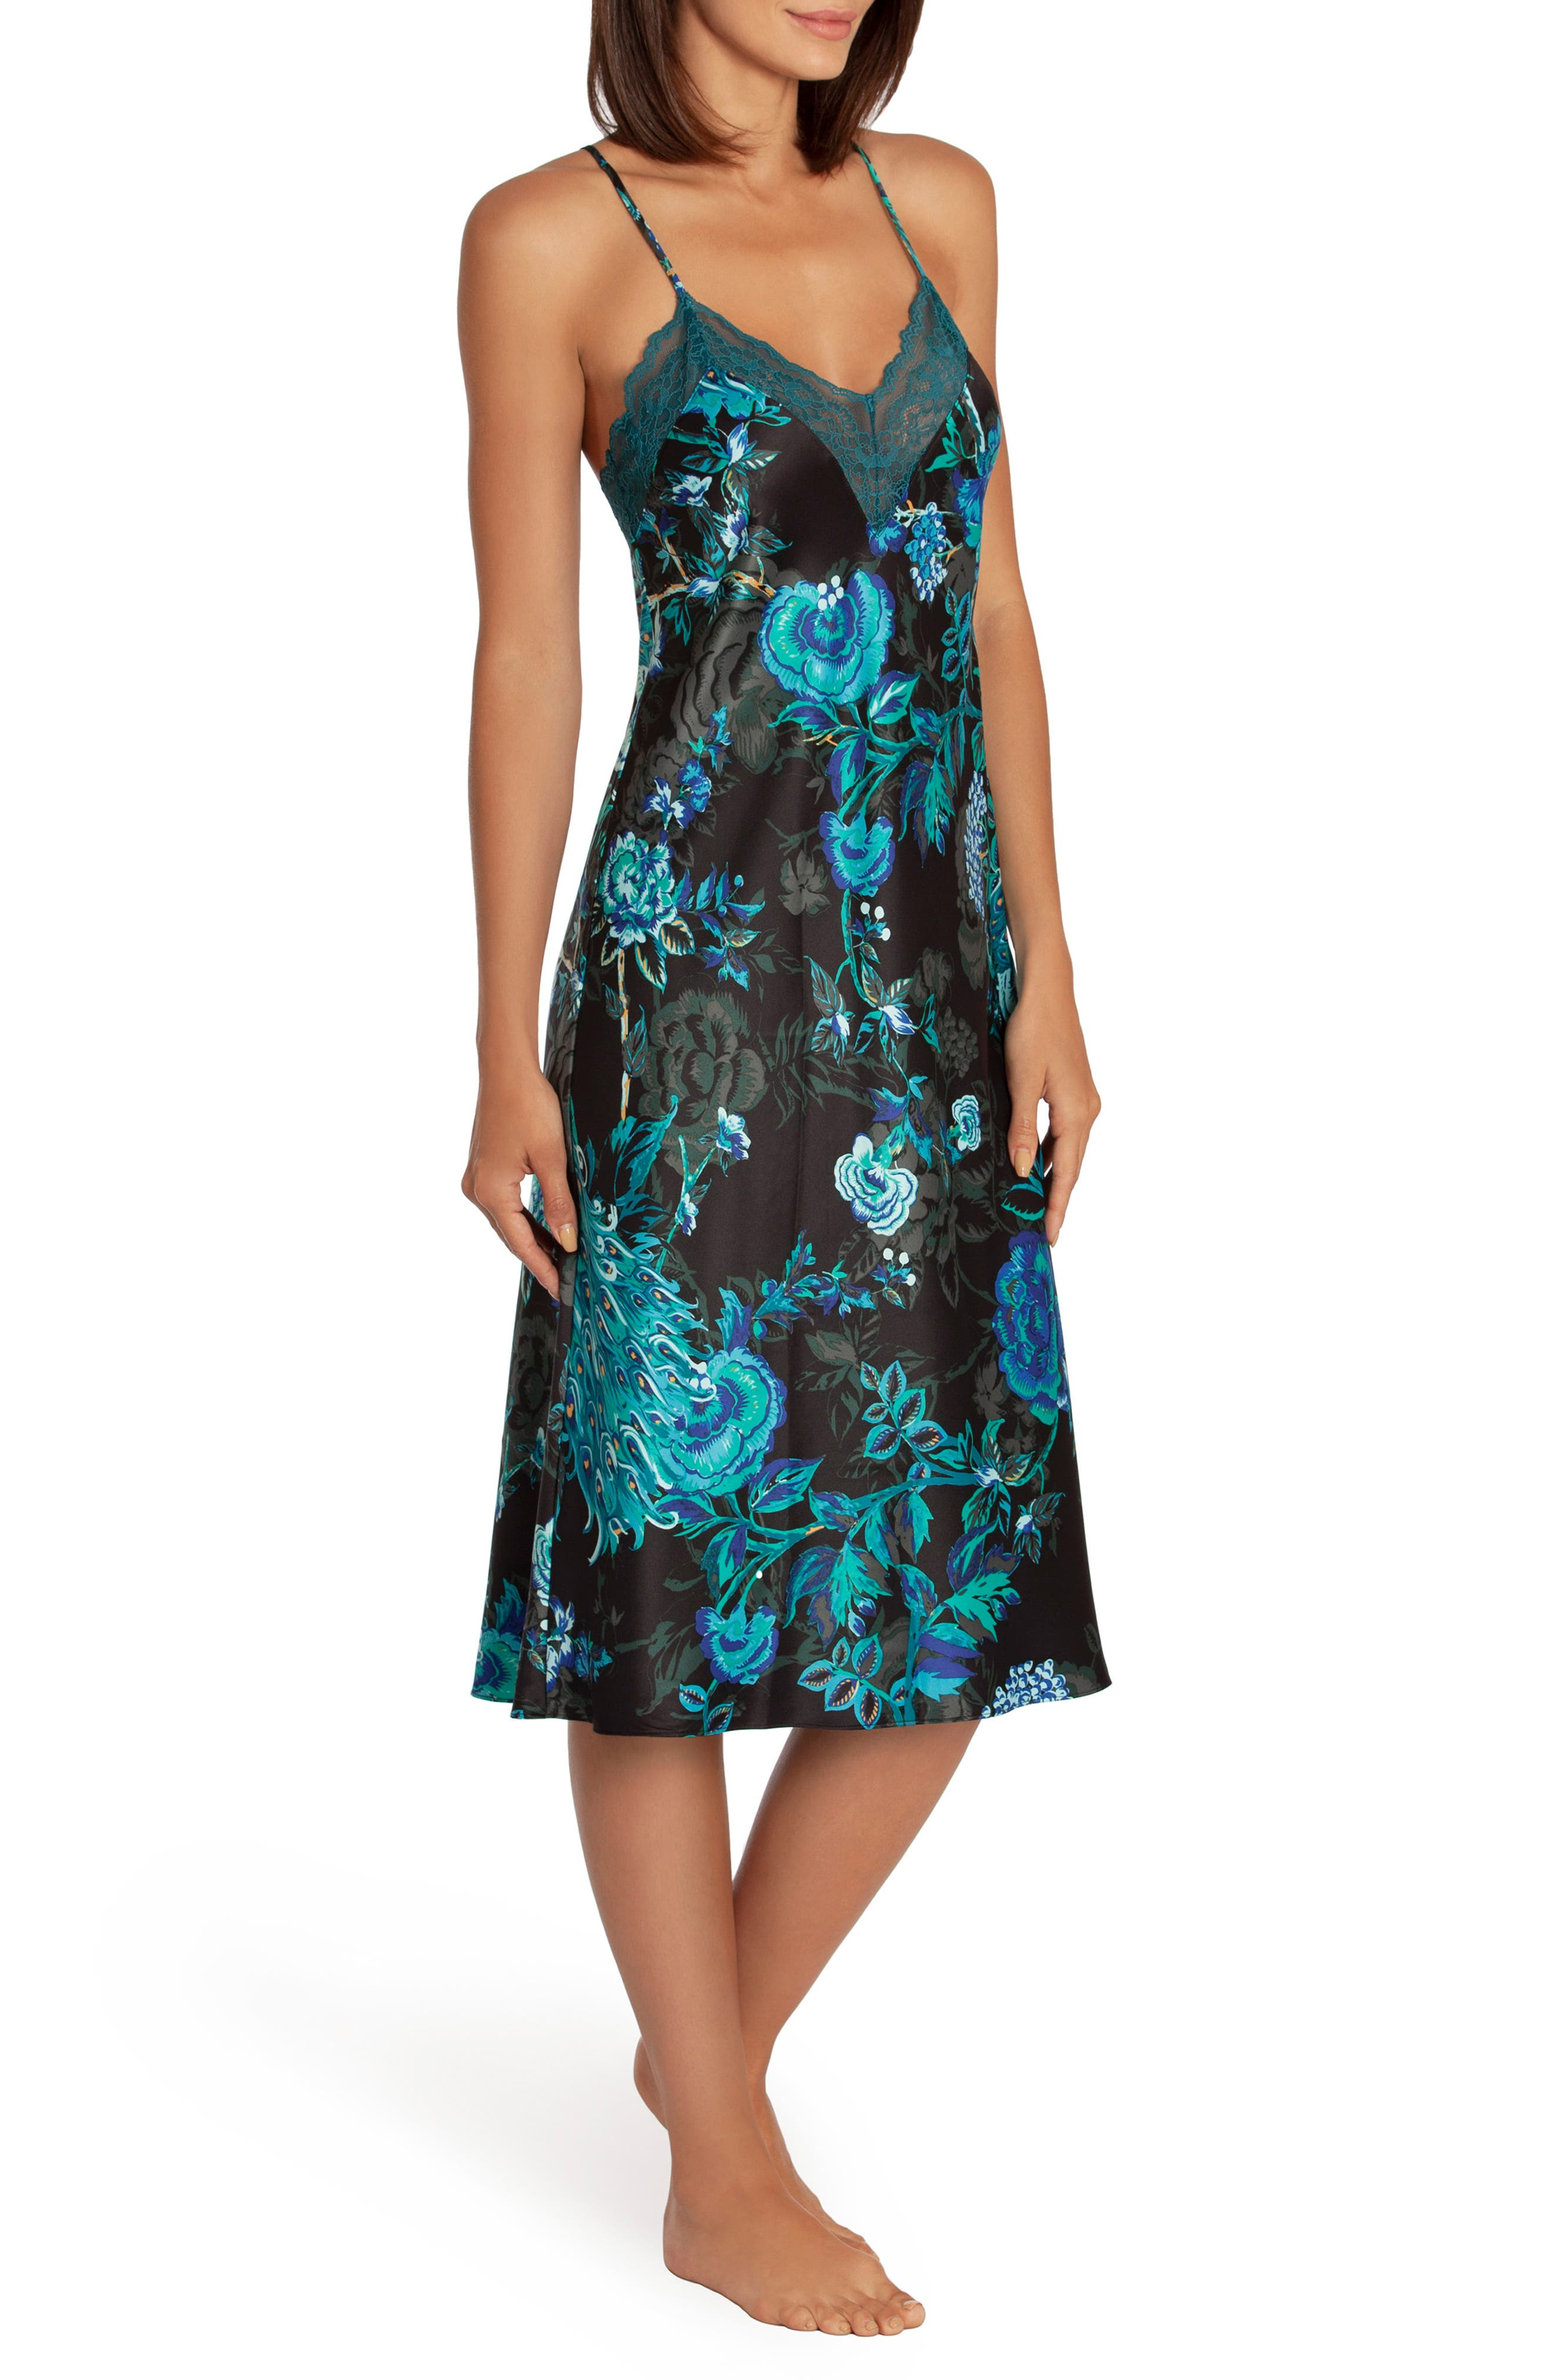 In Bloom by Jonquil Peacock Satin Nightgown (Nordstrom Exclusive)